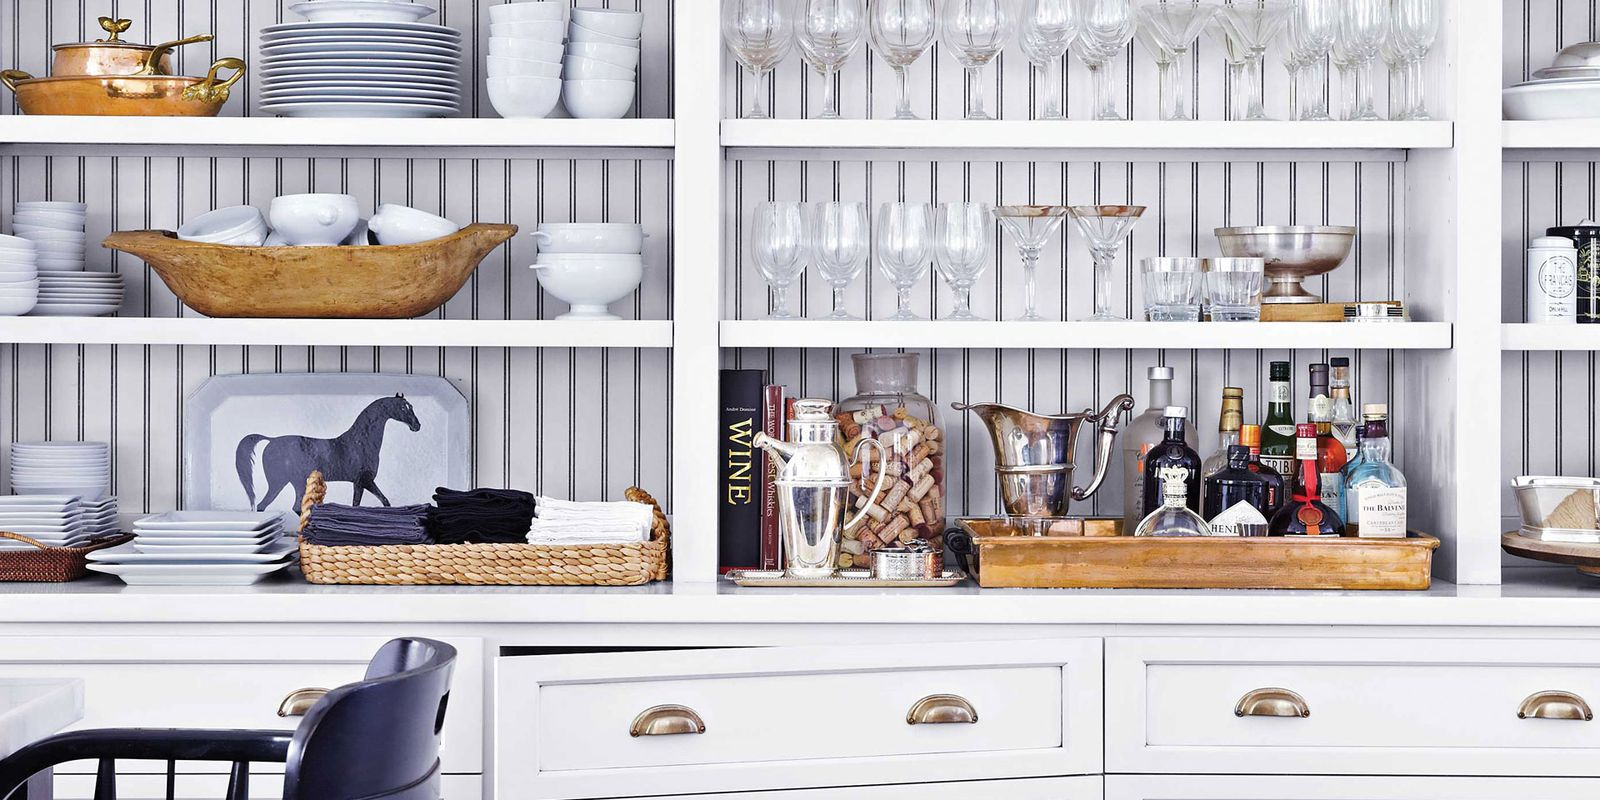 16 unique kitchen storage ideas kitchen organization tips for Kitchen ideas storage